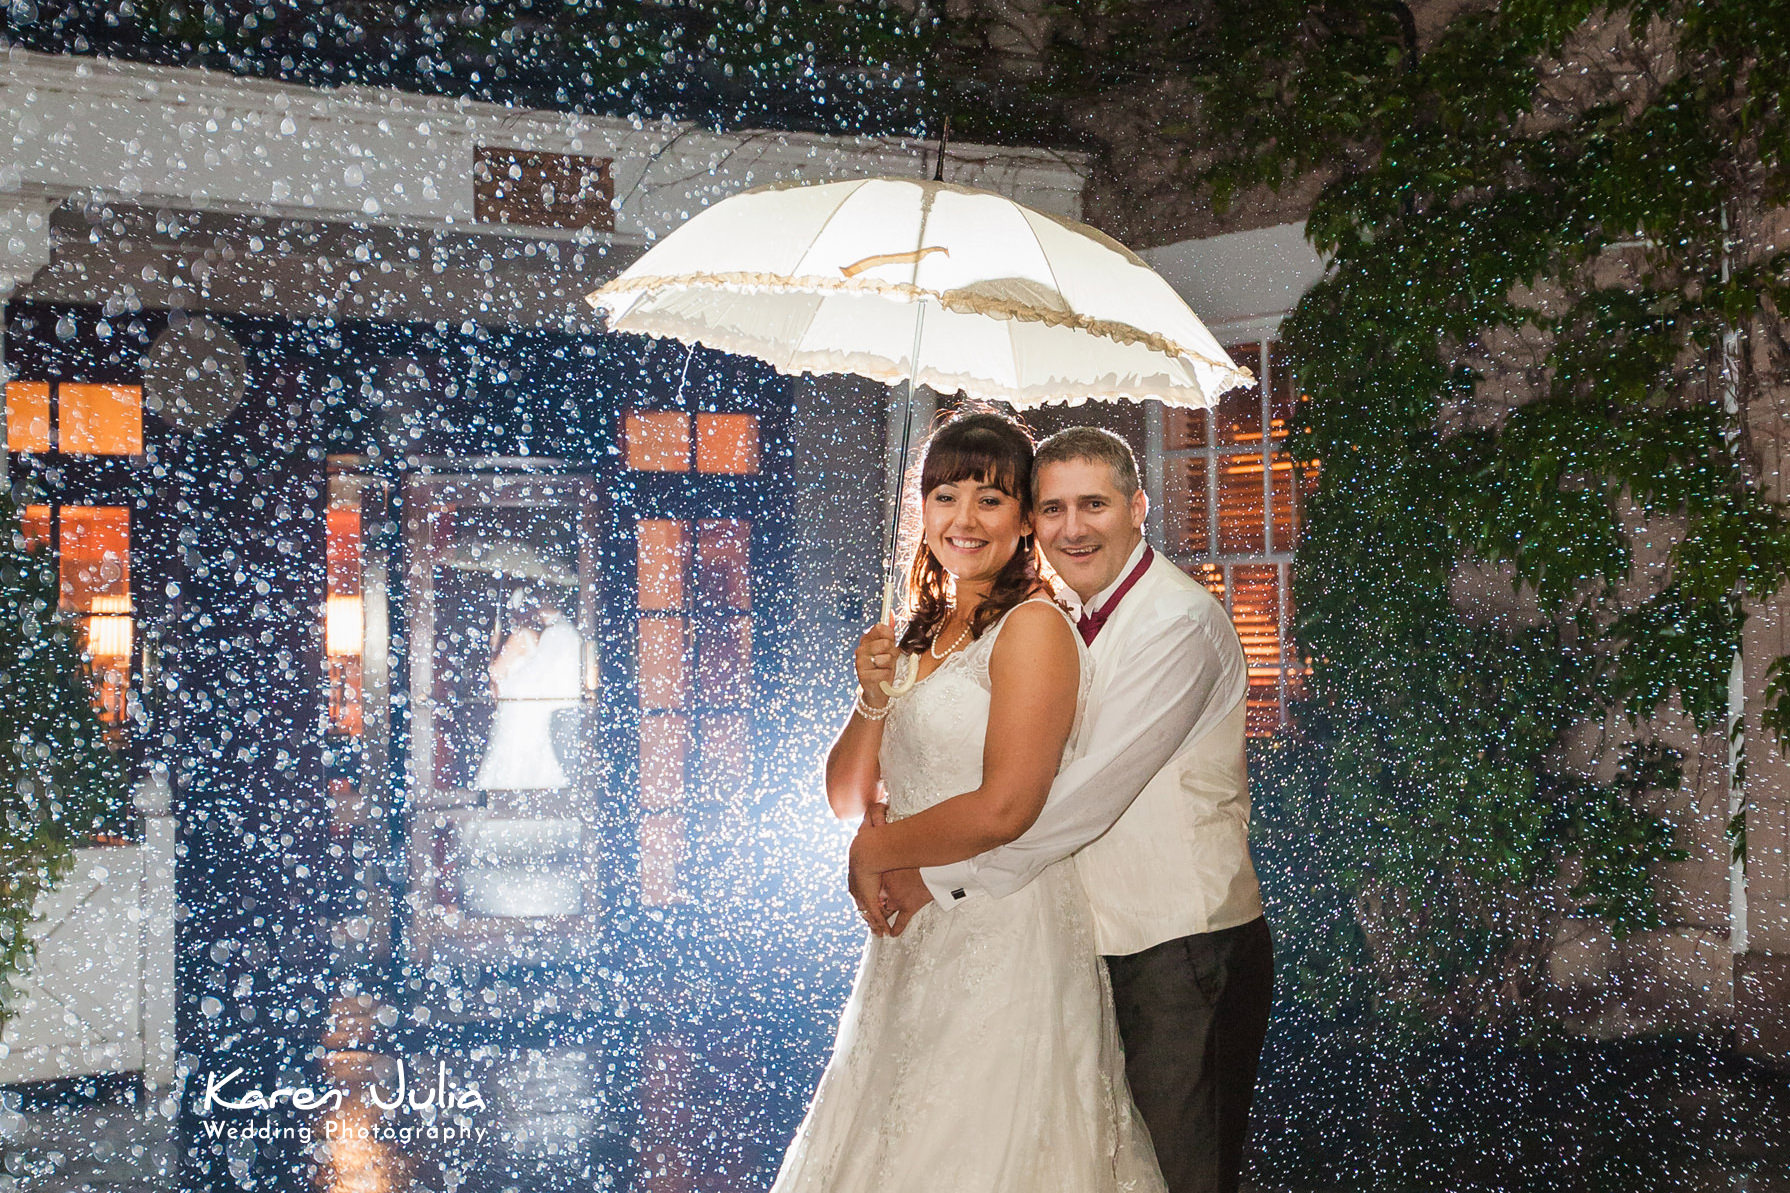 bride & groom portrait in rain by karen julia